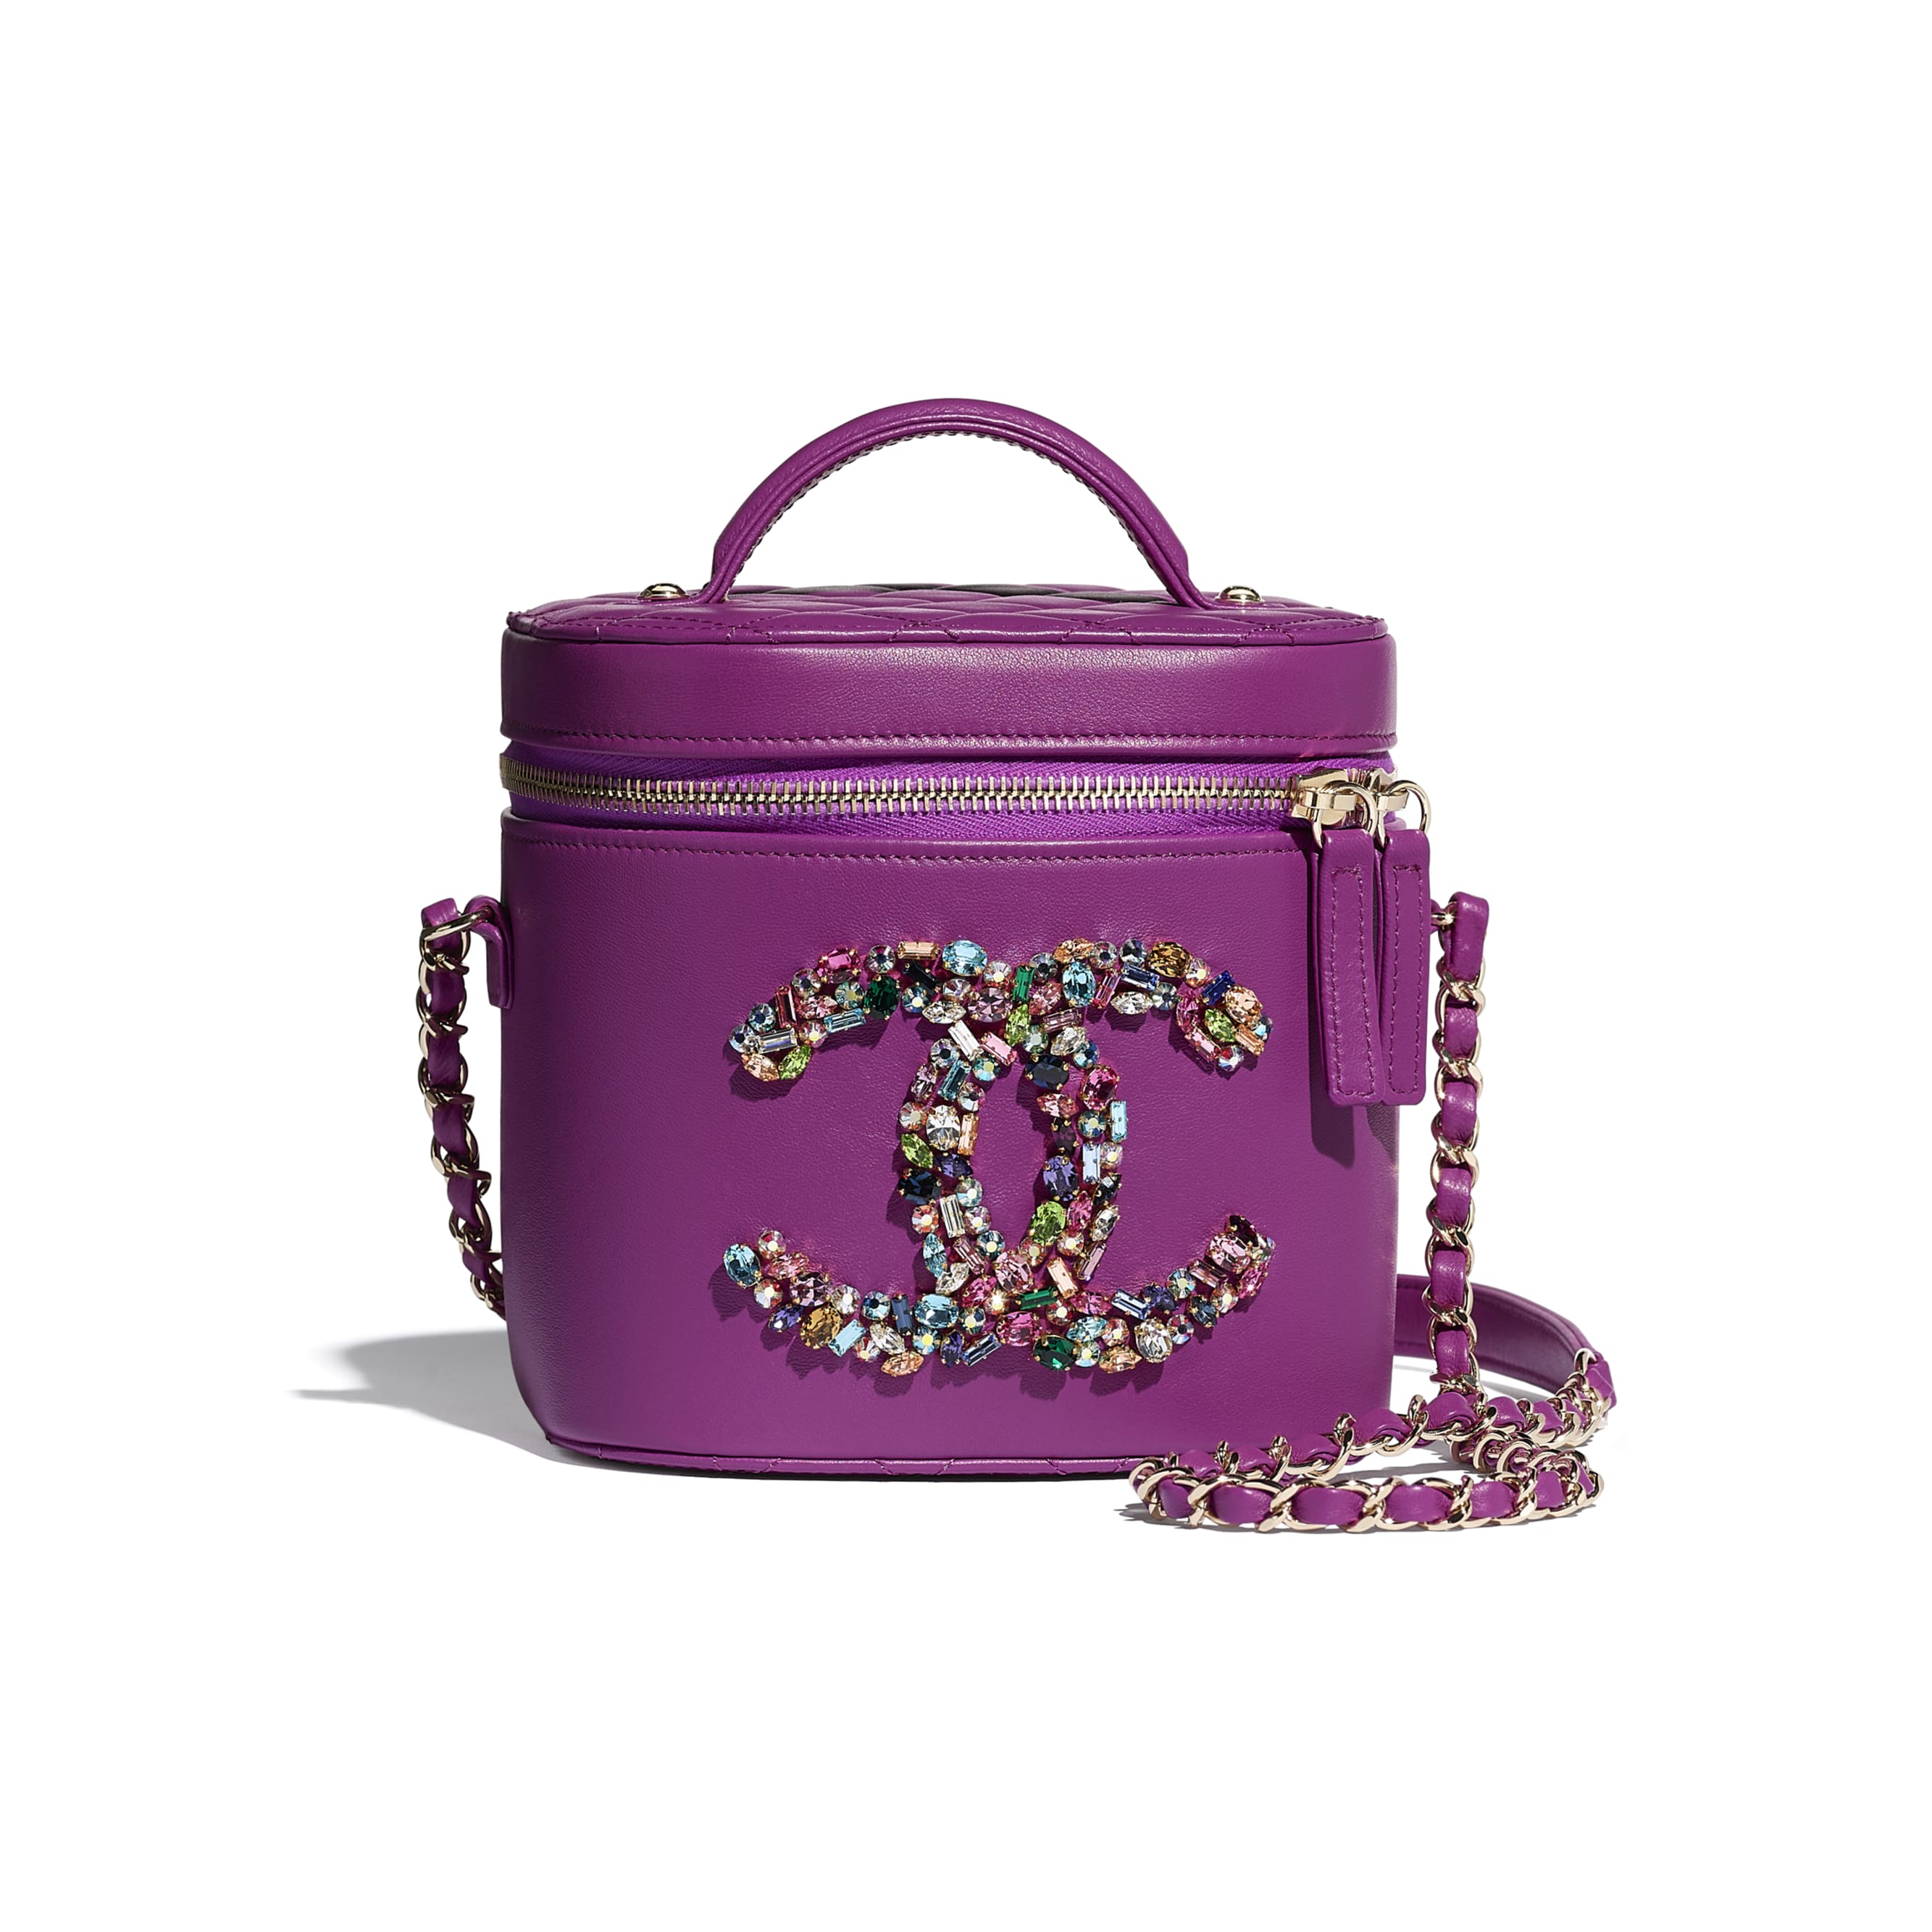 Vanity Case - Purple - Lambskin, Crystal, Calfskin & Gold-Tone Metal - CHANEL - Default view - see standard sized version